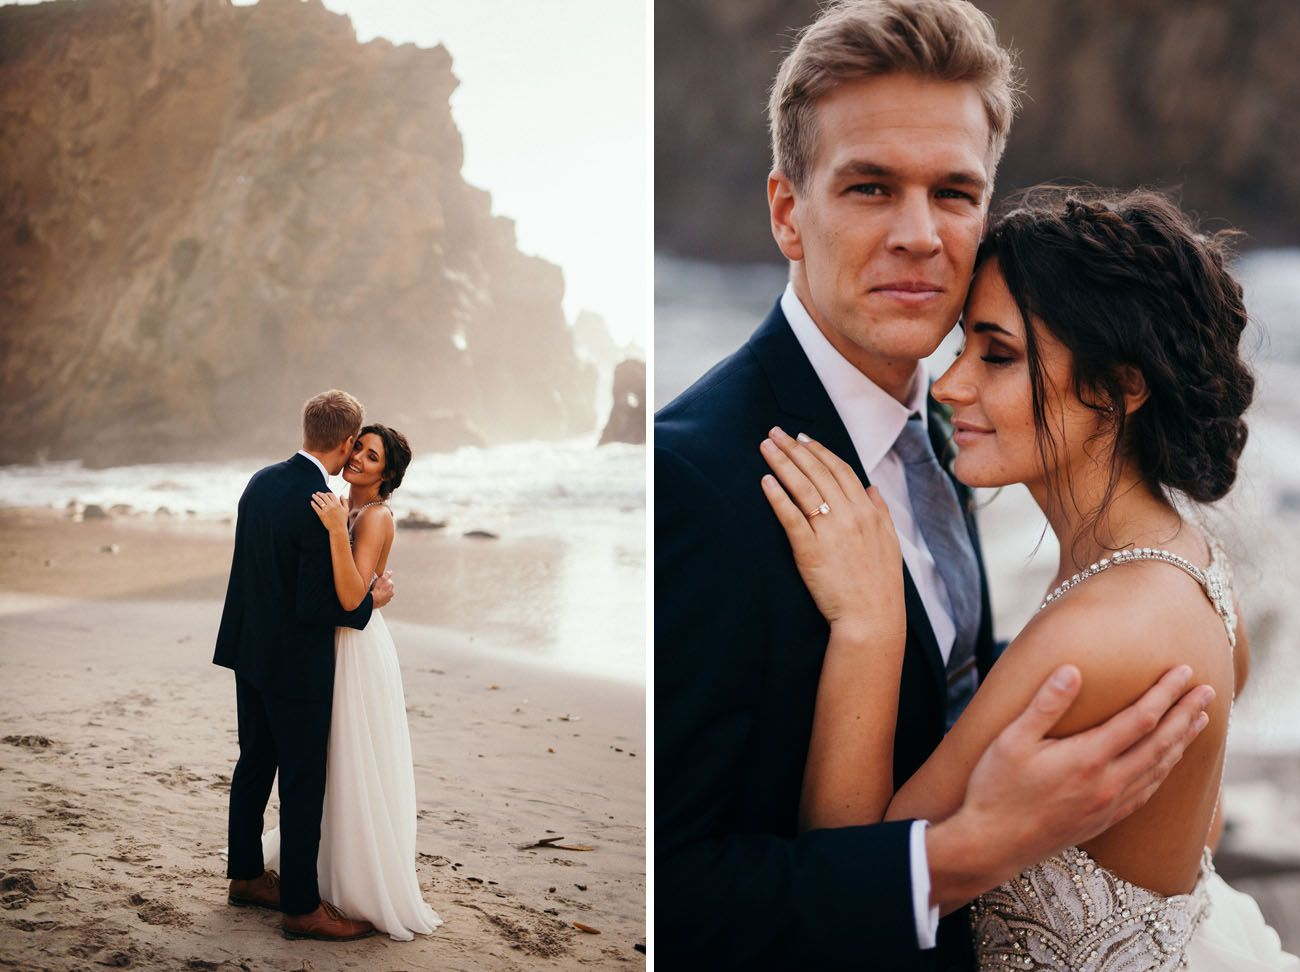 Intimate Big Sur Beach Wedding Planned In 90 Days Green Wedding Shoes Beach Wedding Planning Big Sur Wedding Beach Wedding Locations